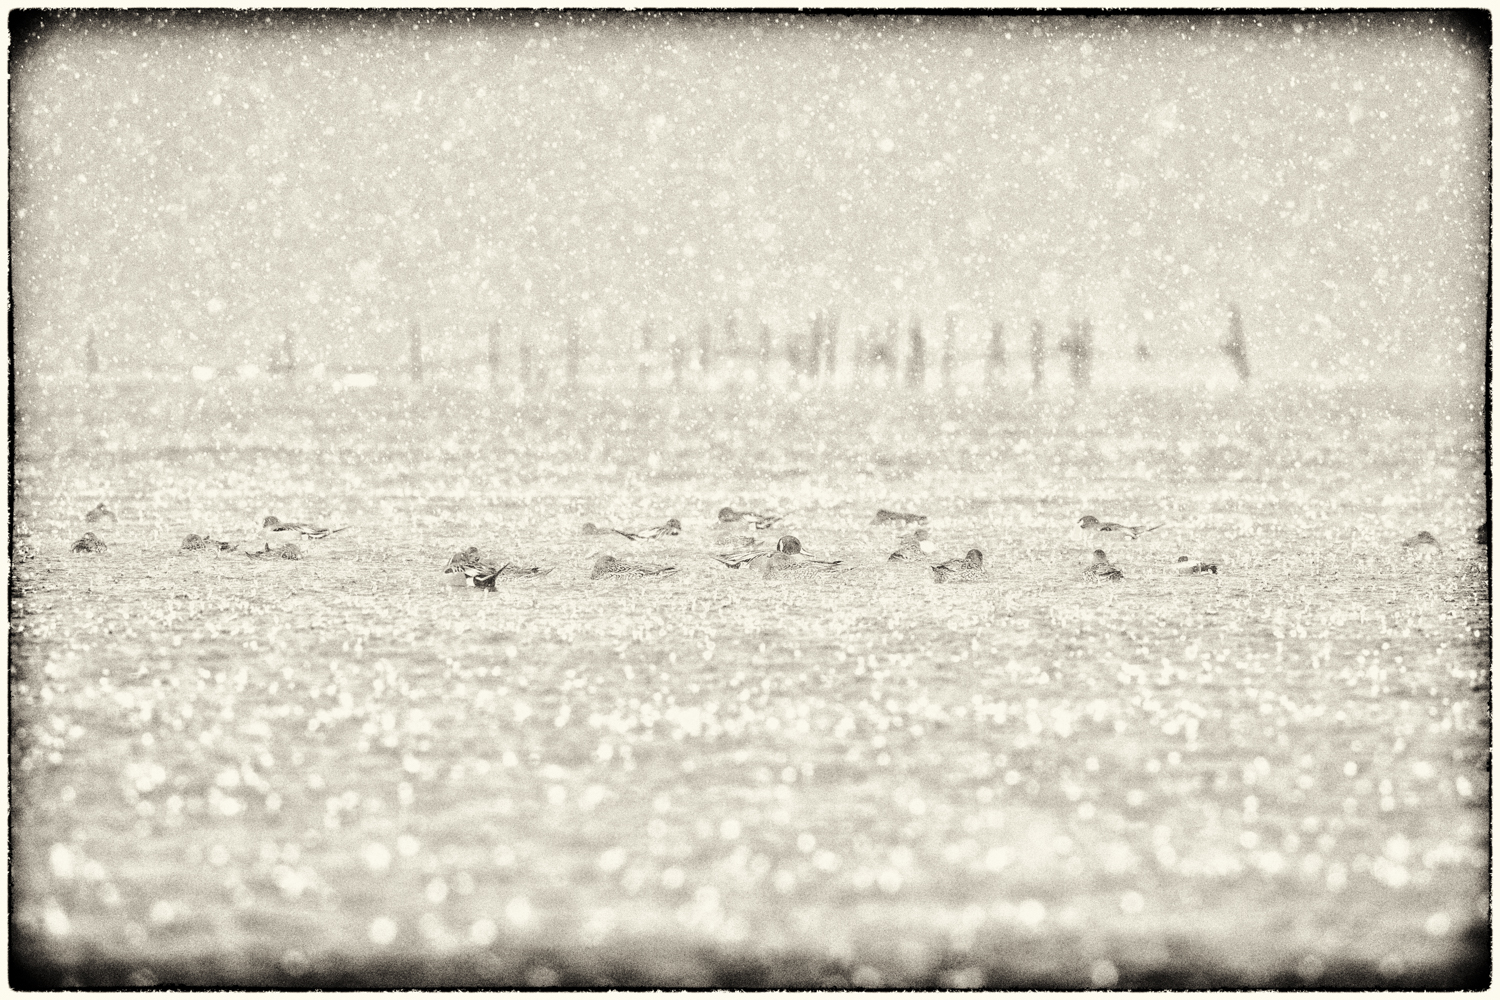 Waterfowl-06.jpg